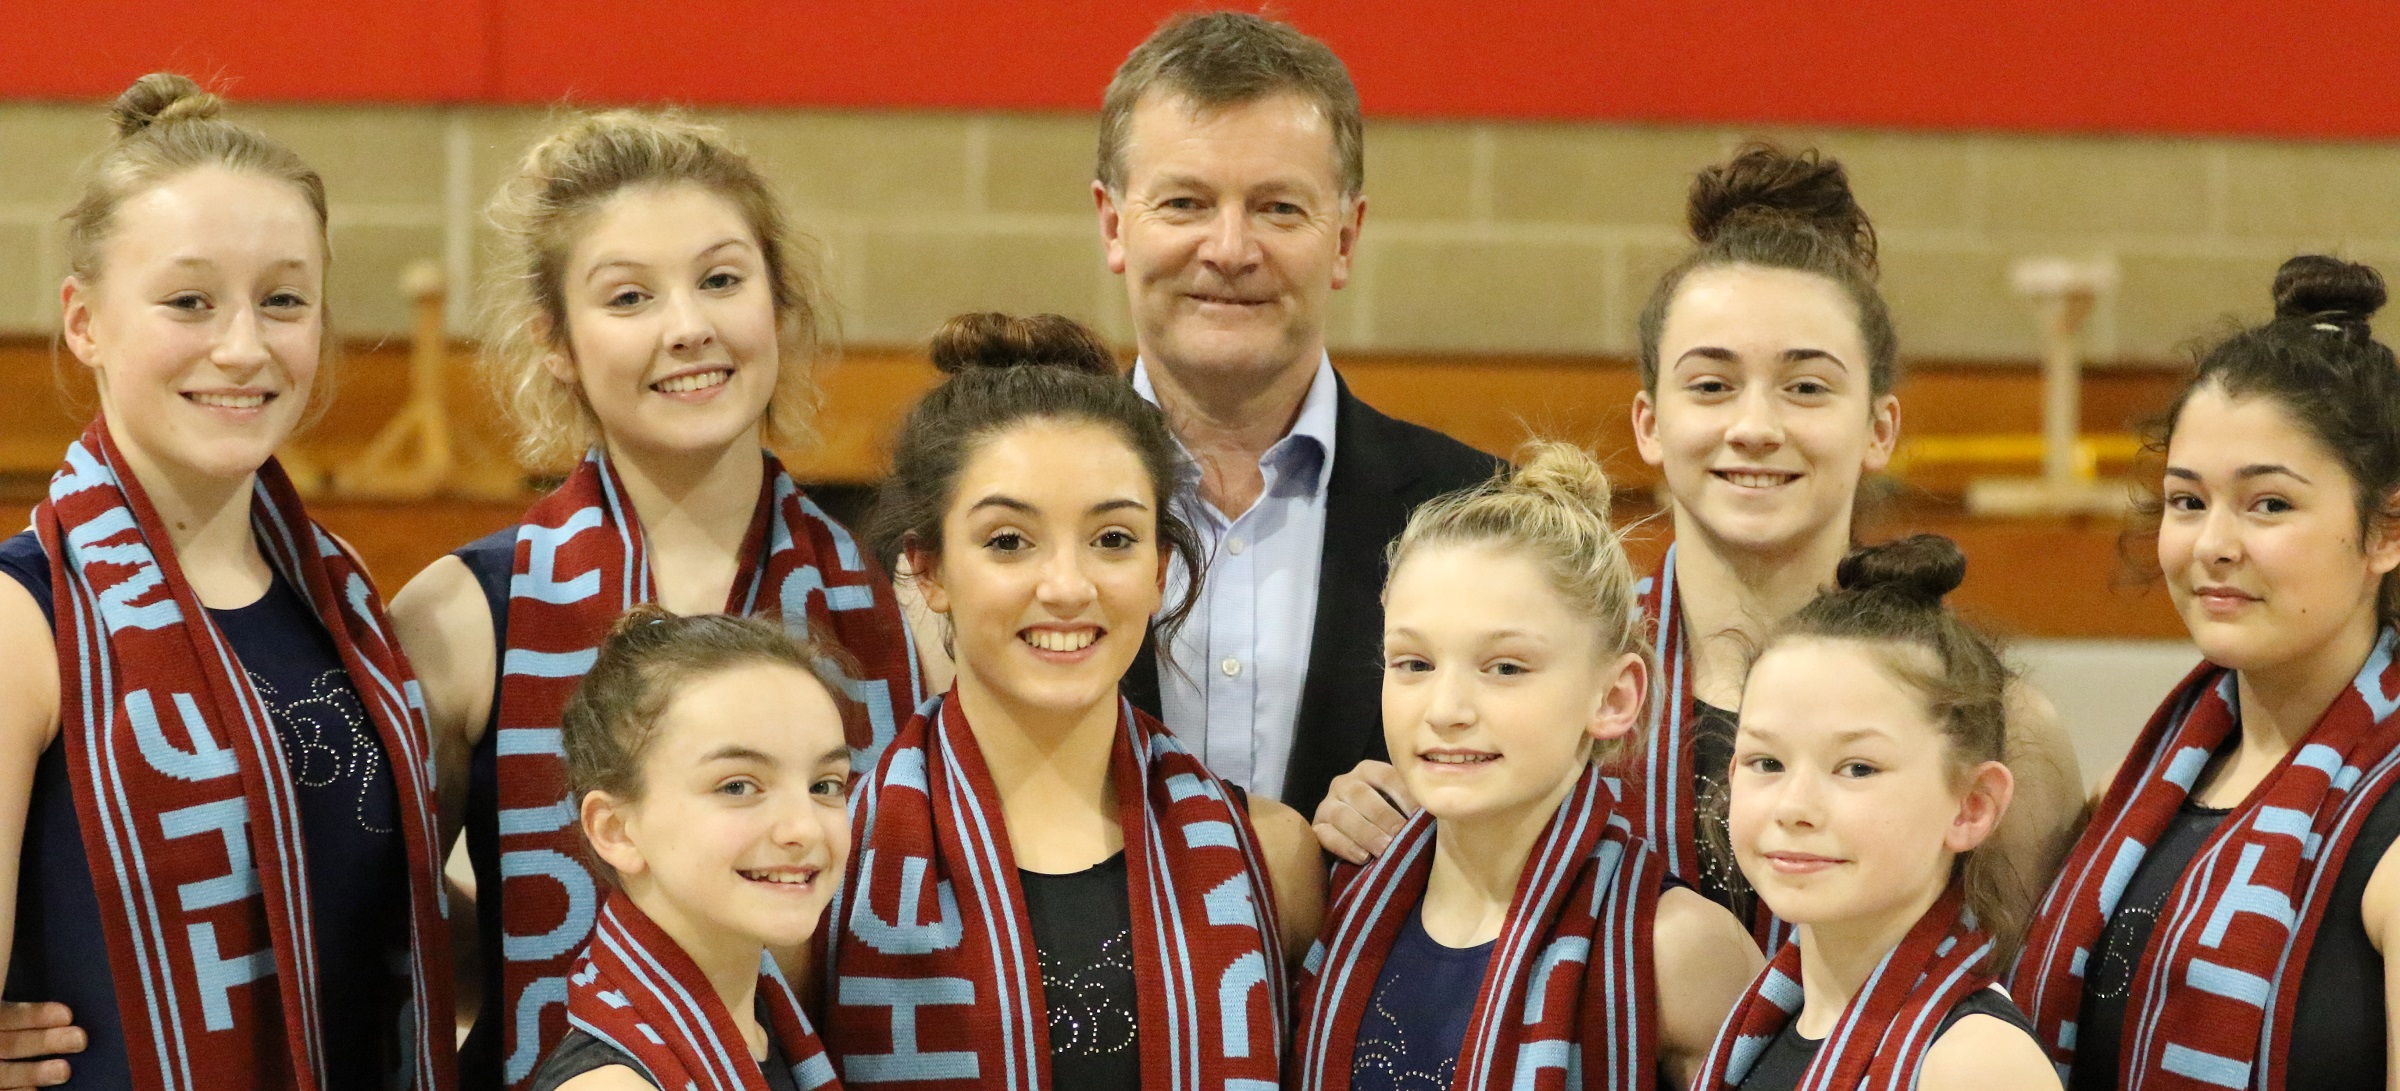 Congratulations! South Tyneside gymnasts enjoy success on world stage